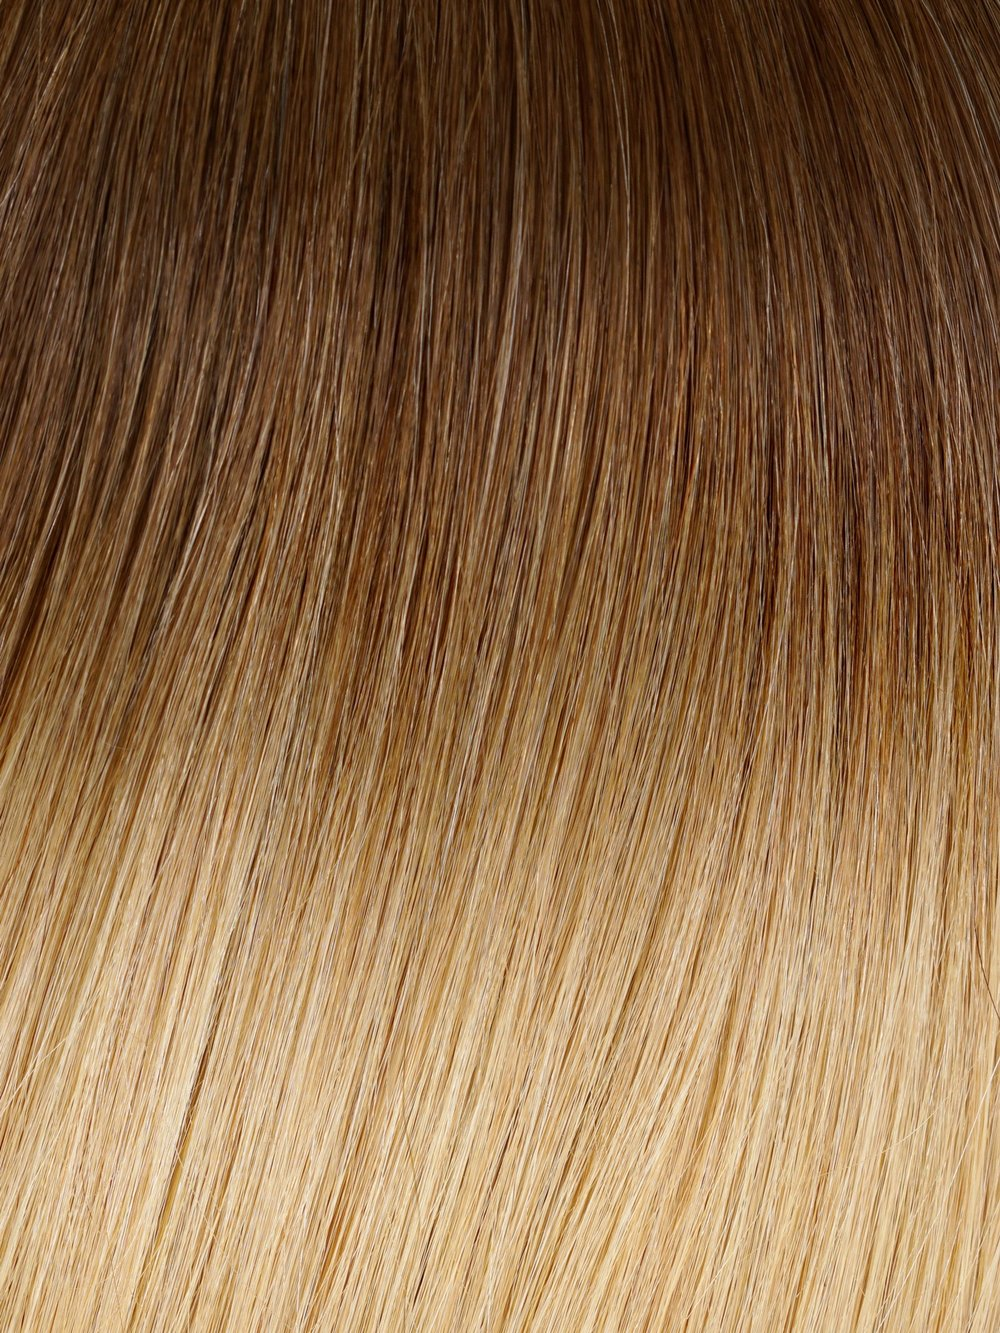 CINNAMON BALAYAGE #T4/12 - A warm brown shade seamlessly transitions into an ashy blonde for this toasty cinnamon blend. The top half of our cinnamon ombre contains a medium brown that transitions into a lighter cinnamon color brown.